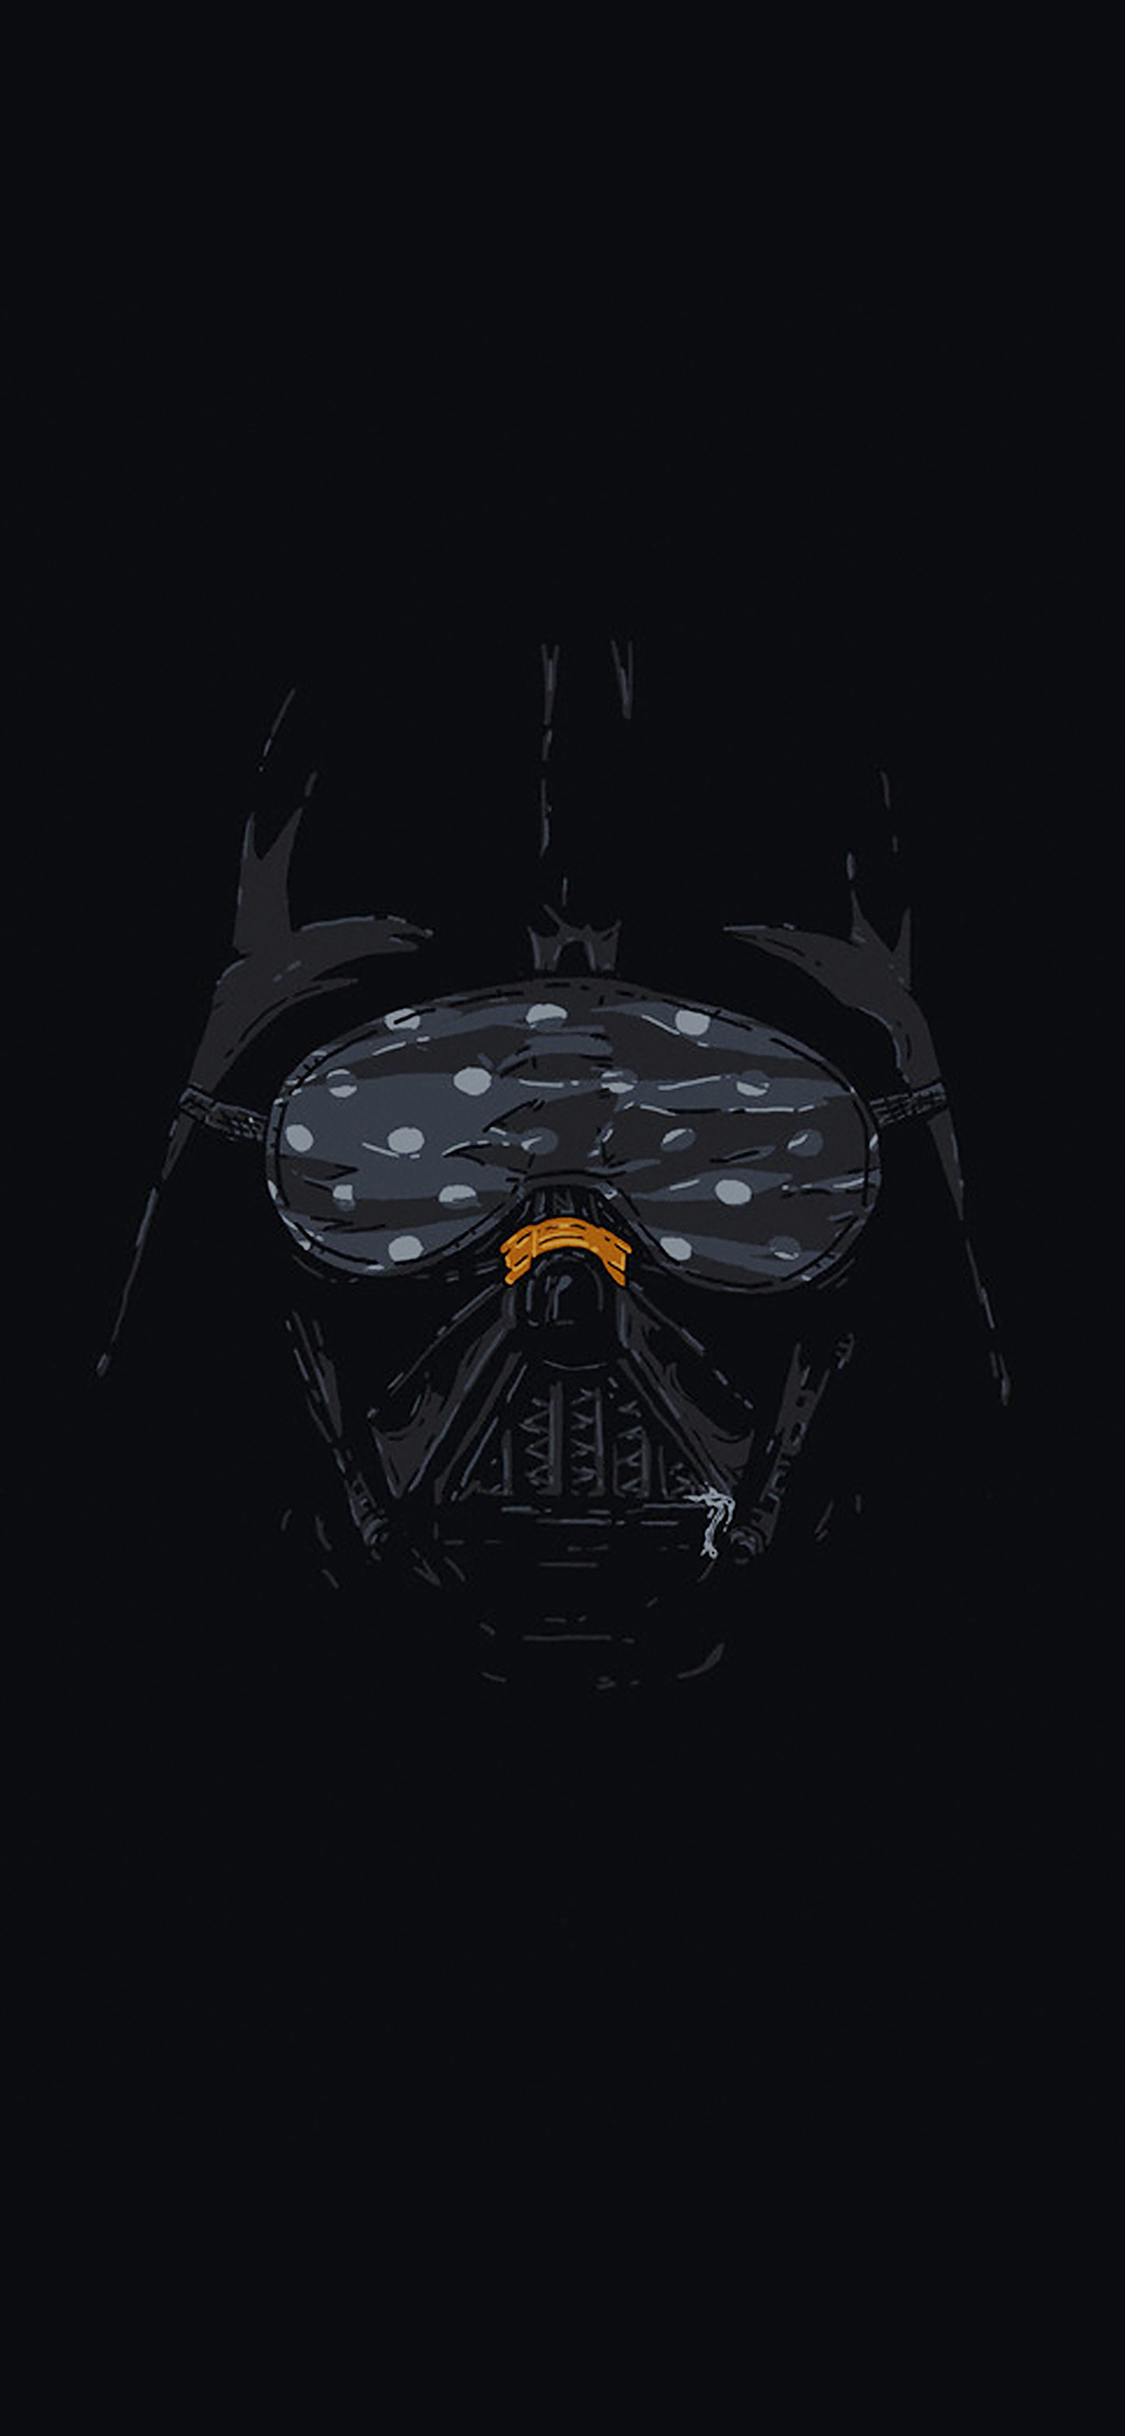 Iphonexpapers Ah87 Darth Vader Minimal Starwars Illust Art